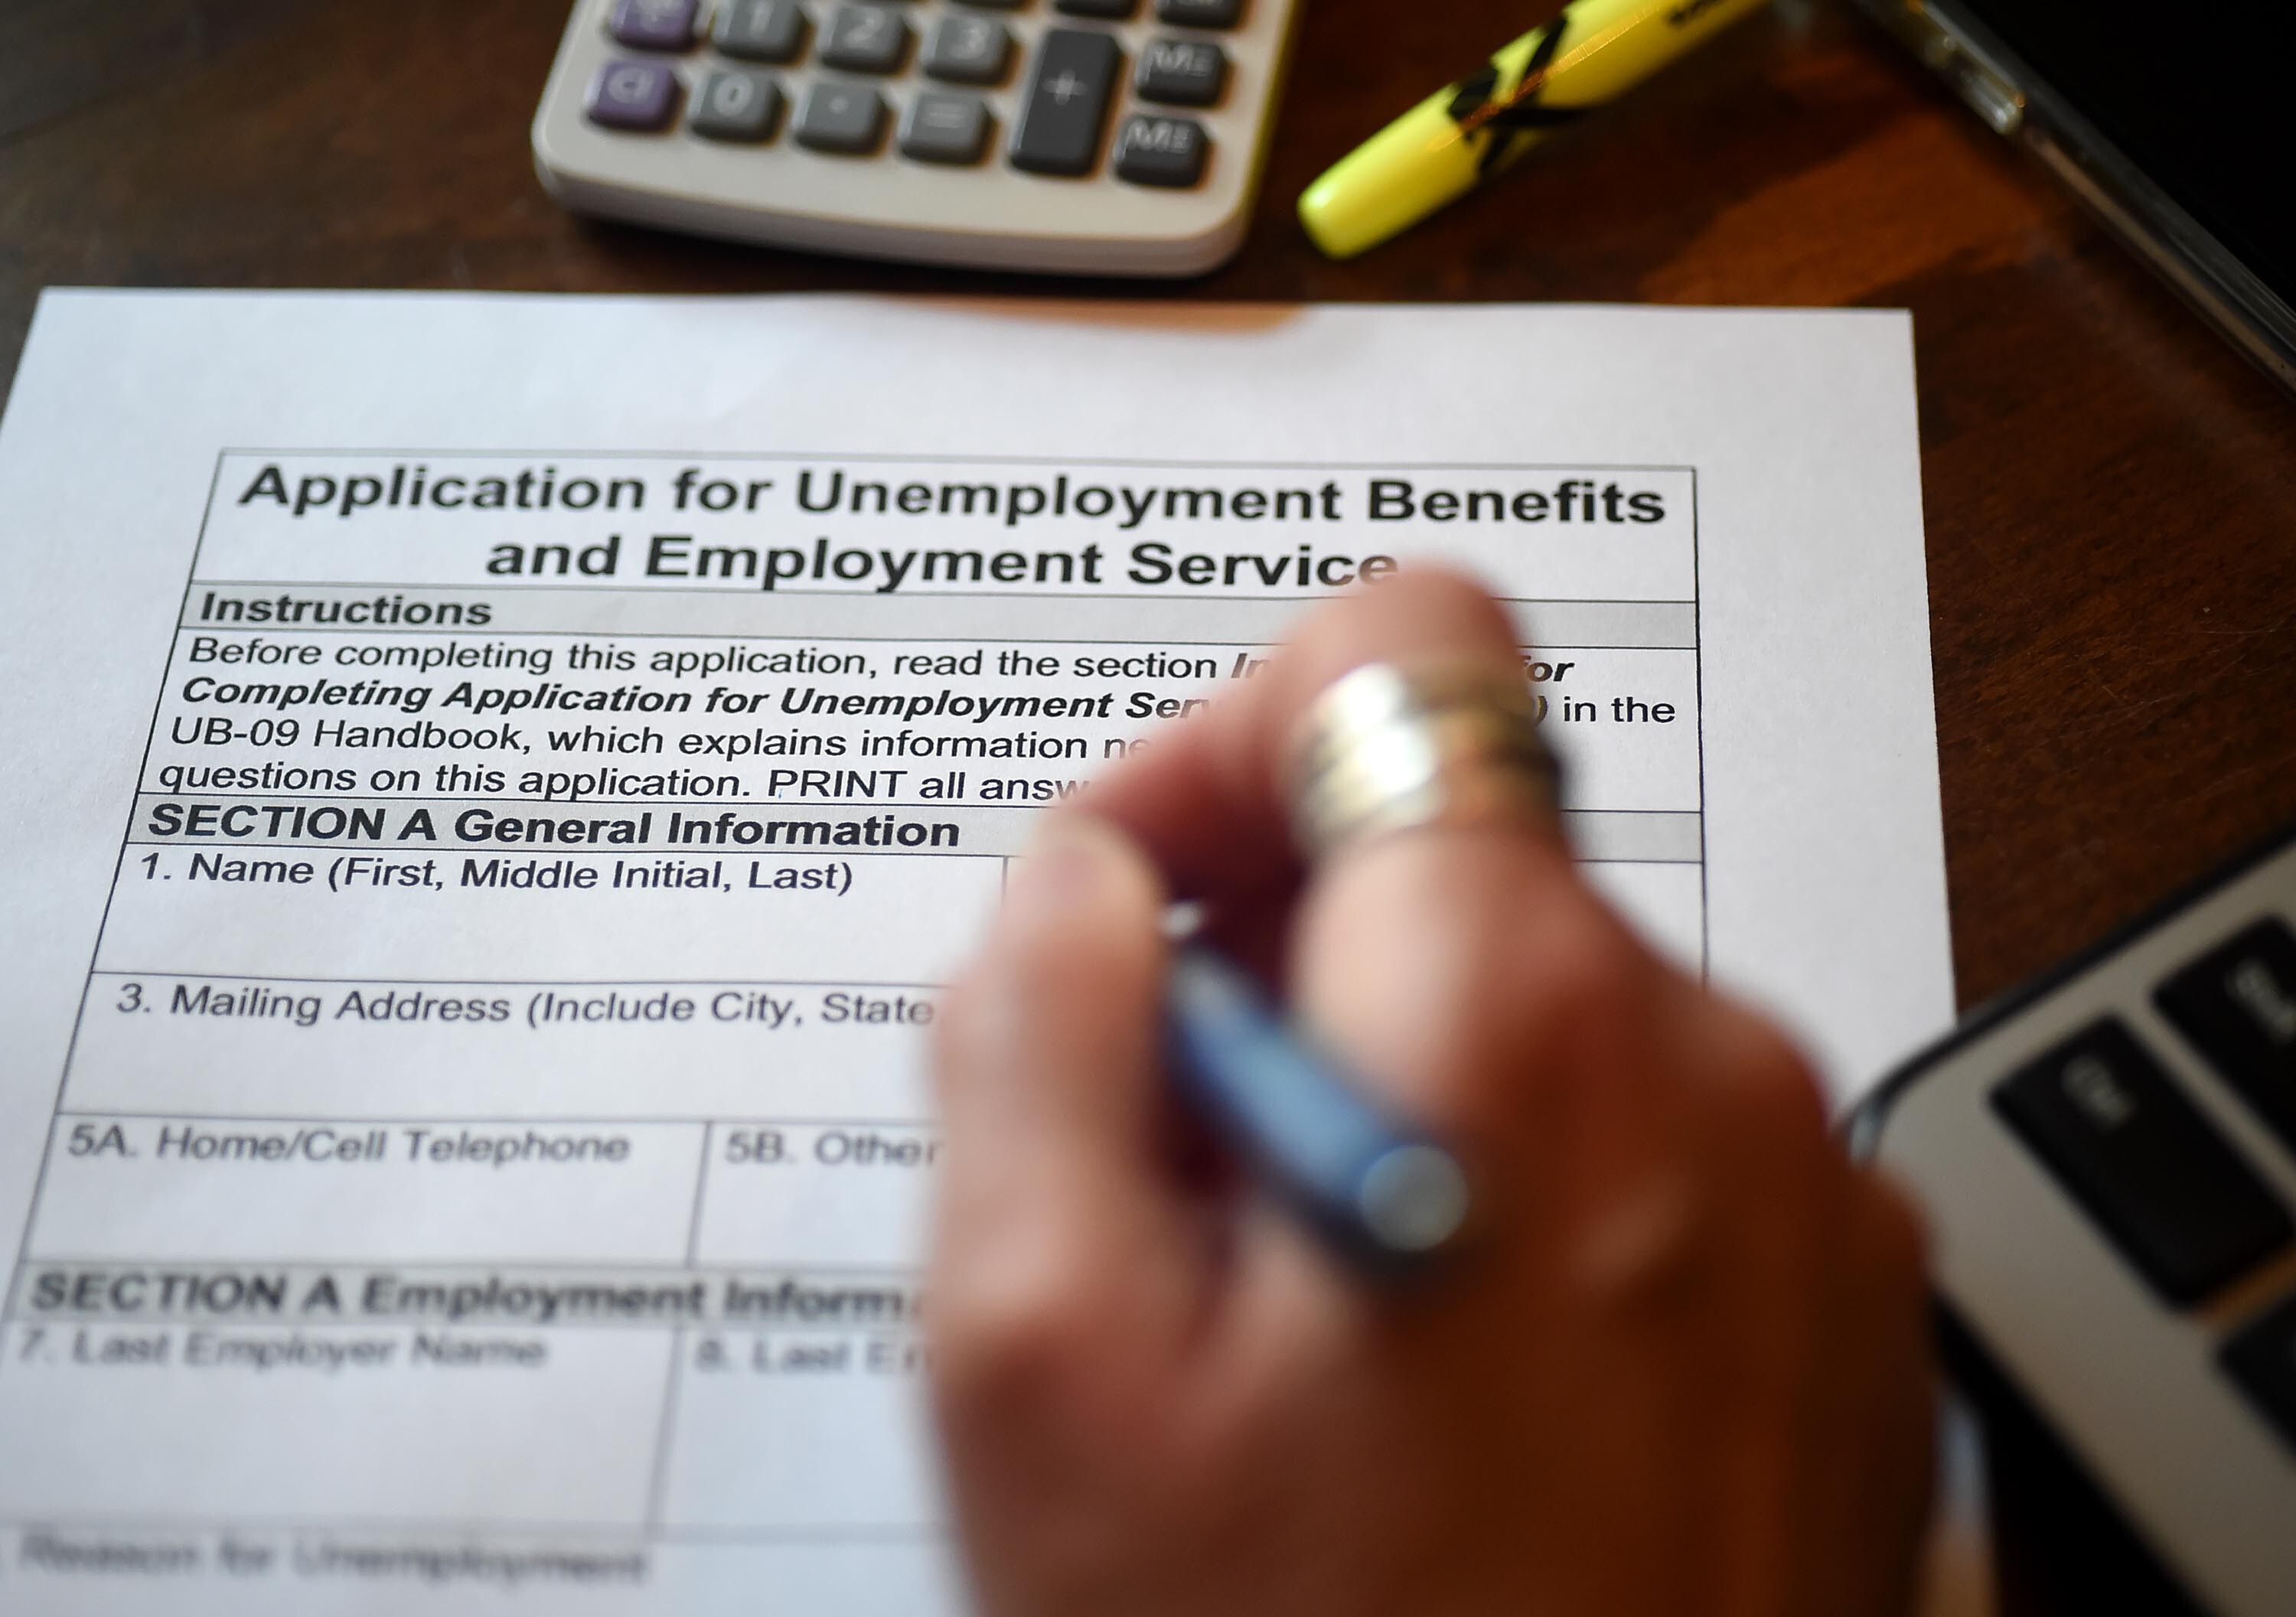 Have your pandemic unemployment benefits expired? What has that meant for you?